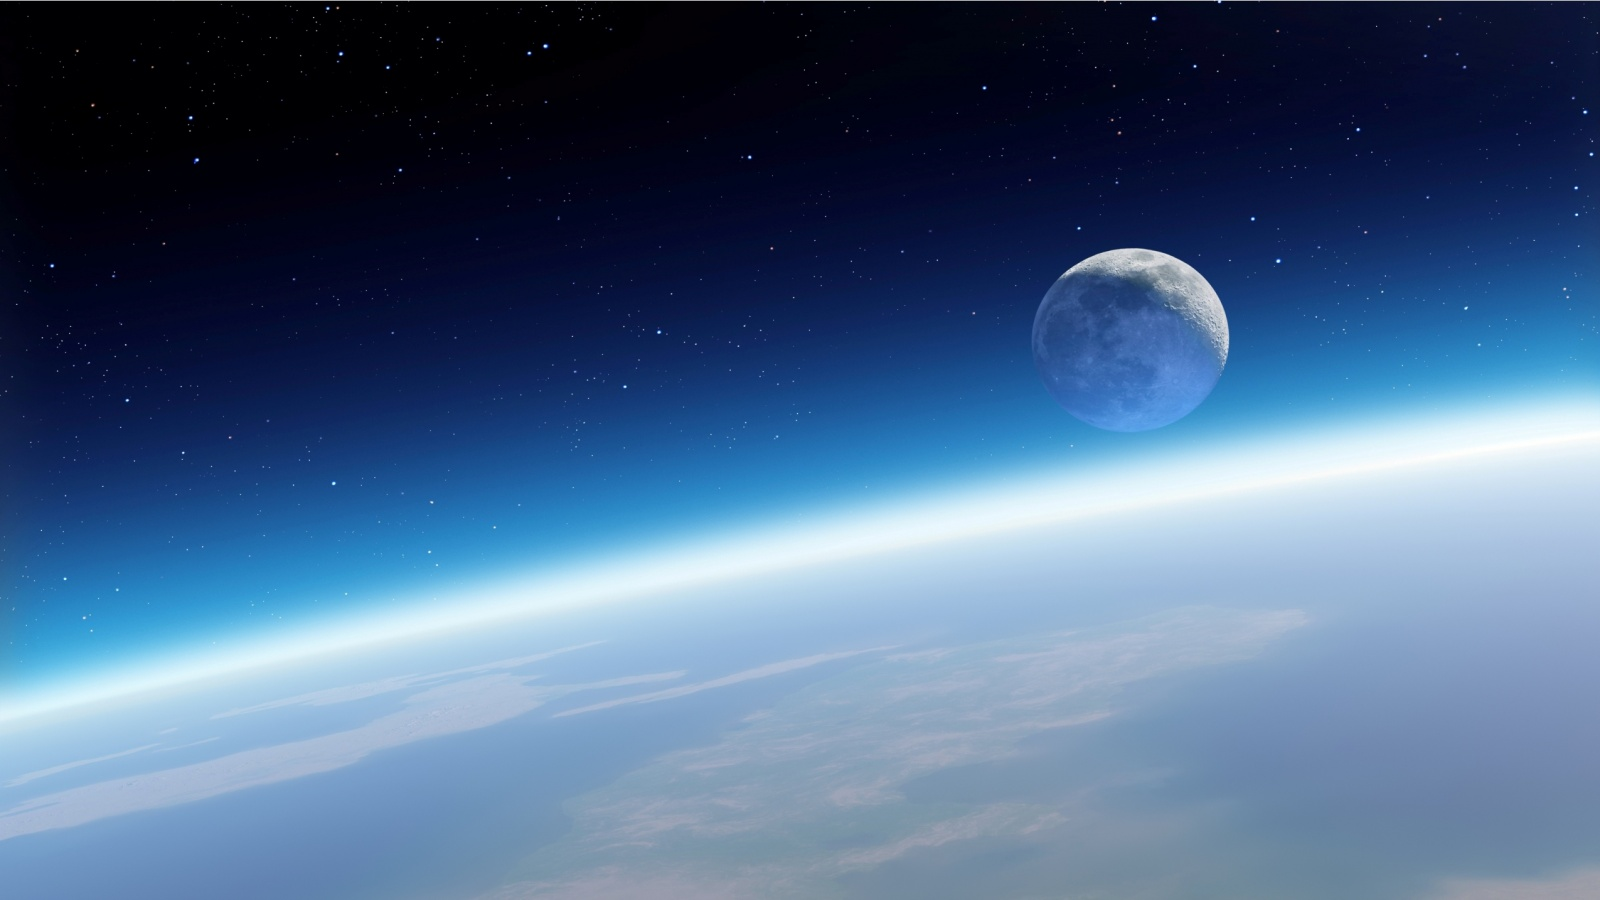 Earth And Moon From Space Wallpapers 1600x900 193022